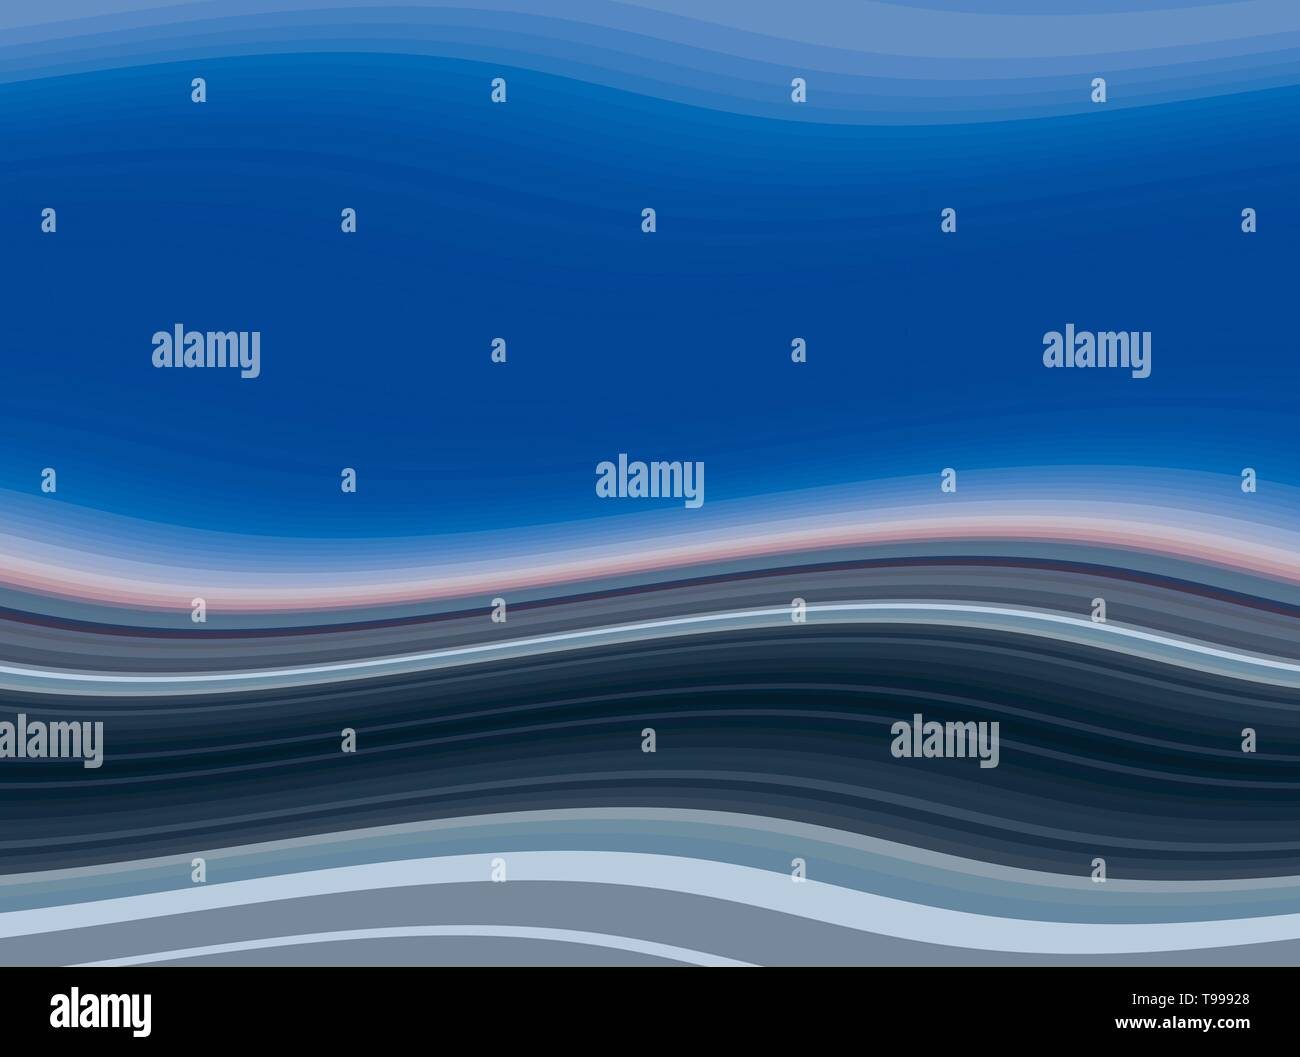 Abstract Waves Background With Strong Blue Very Dark Blue